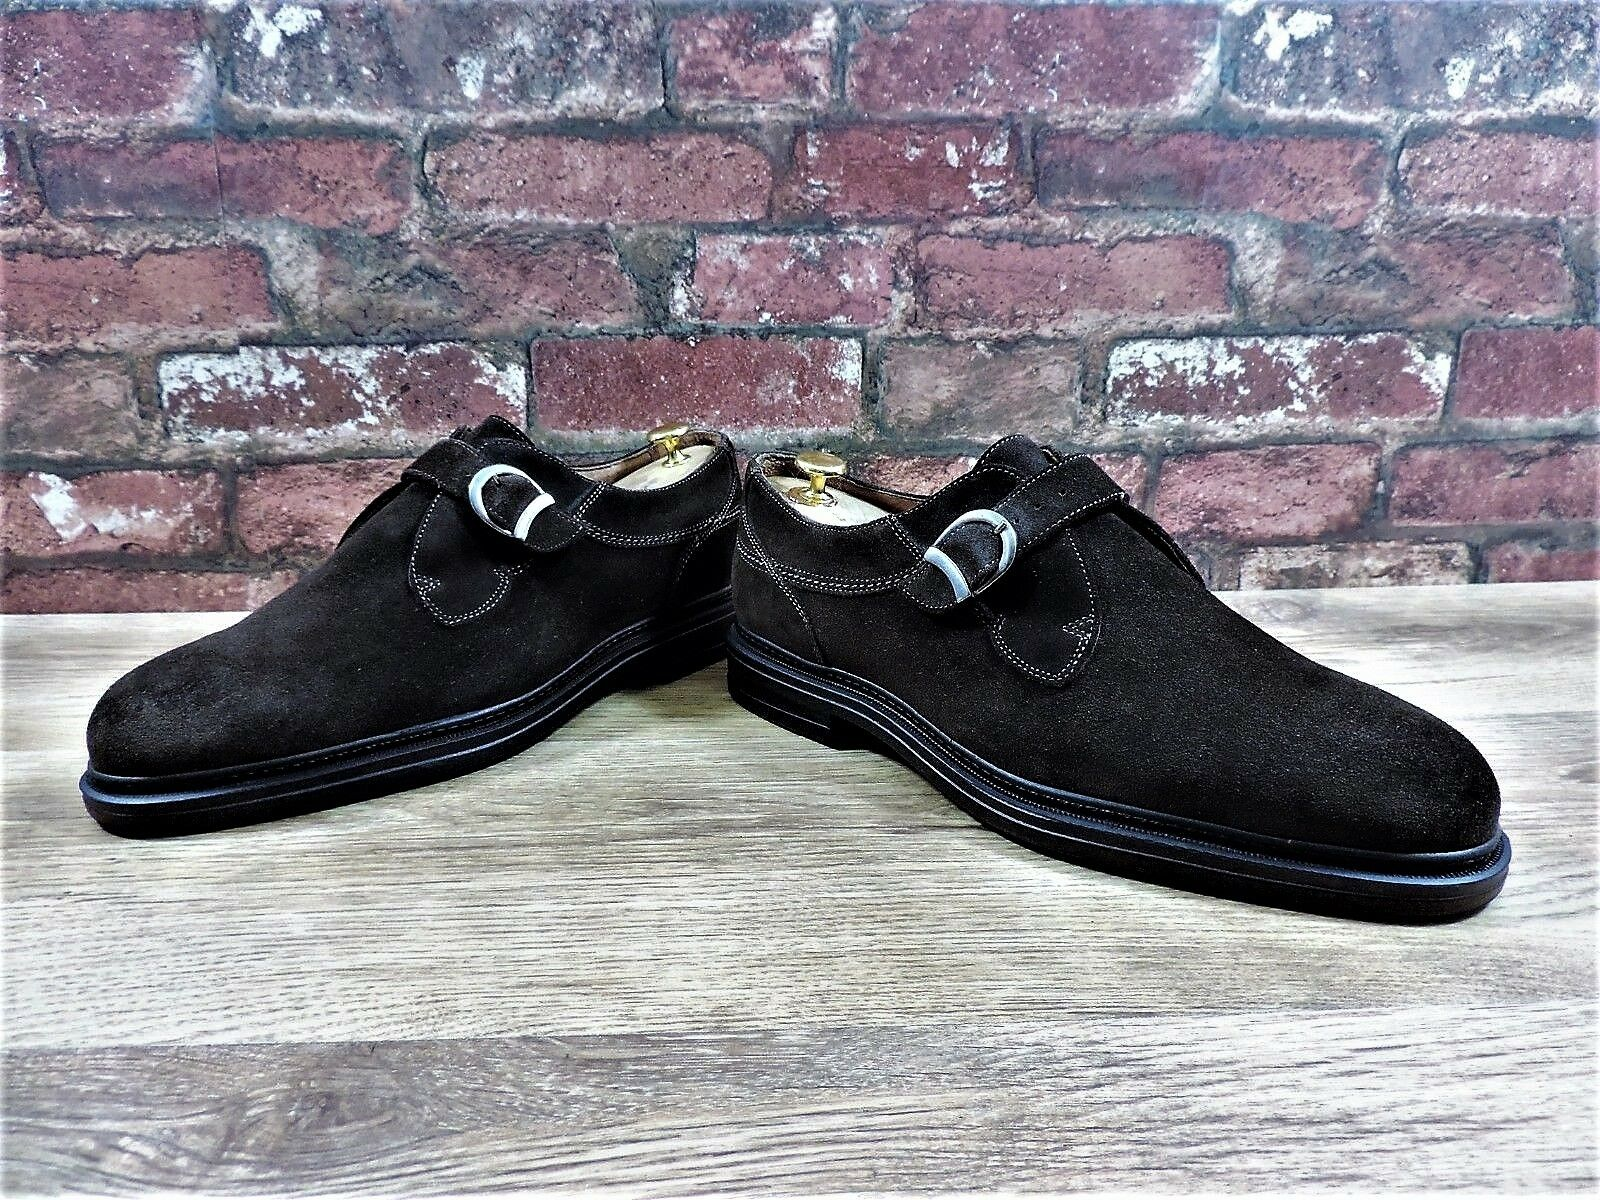 Cable & Co braun Suede UK 10.5 US 11.5 EU 44.5 Worn Once only Goodyear Welted